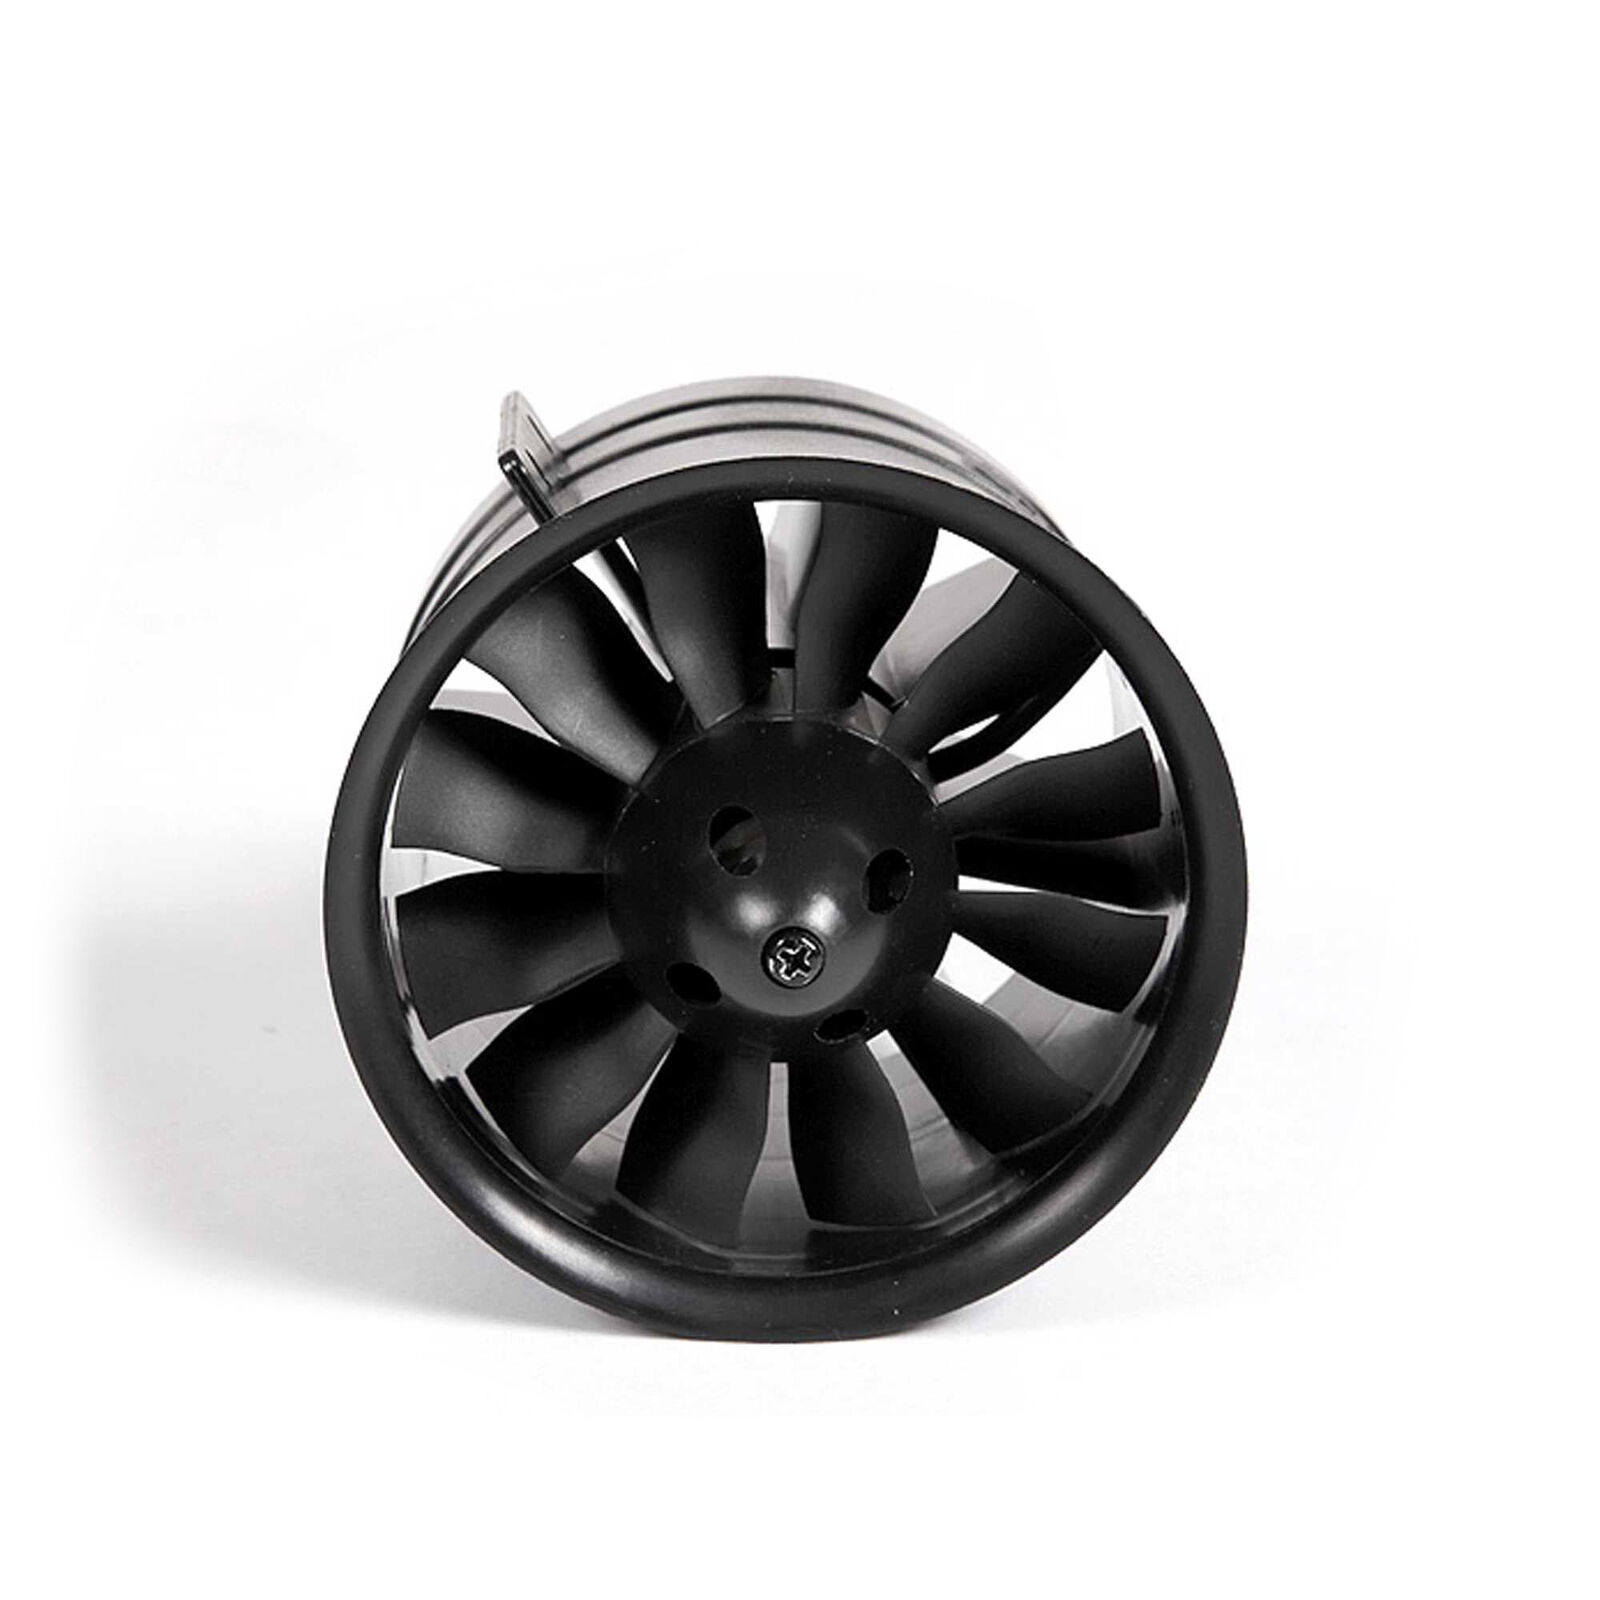 12-Blade Ducted Fan Only, 90mm